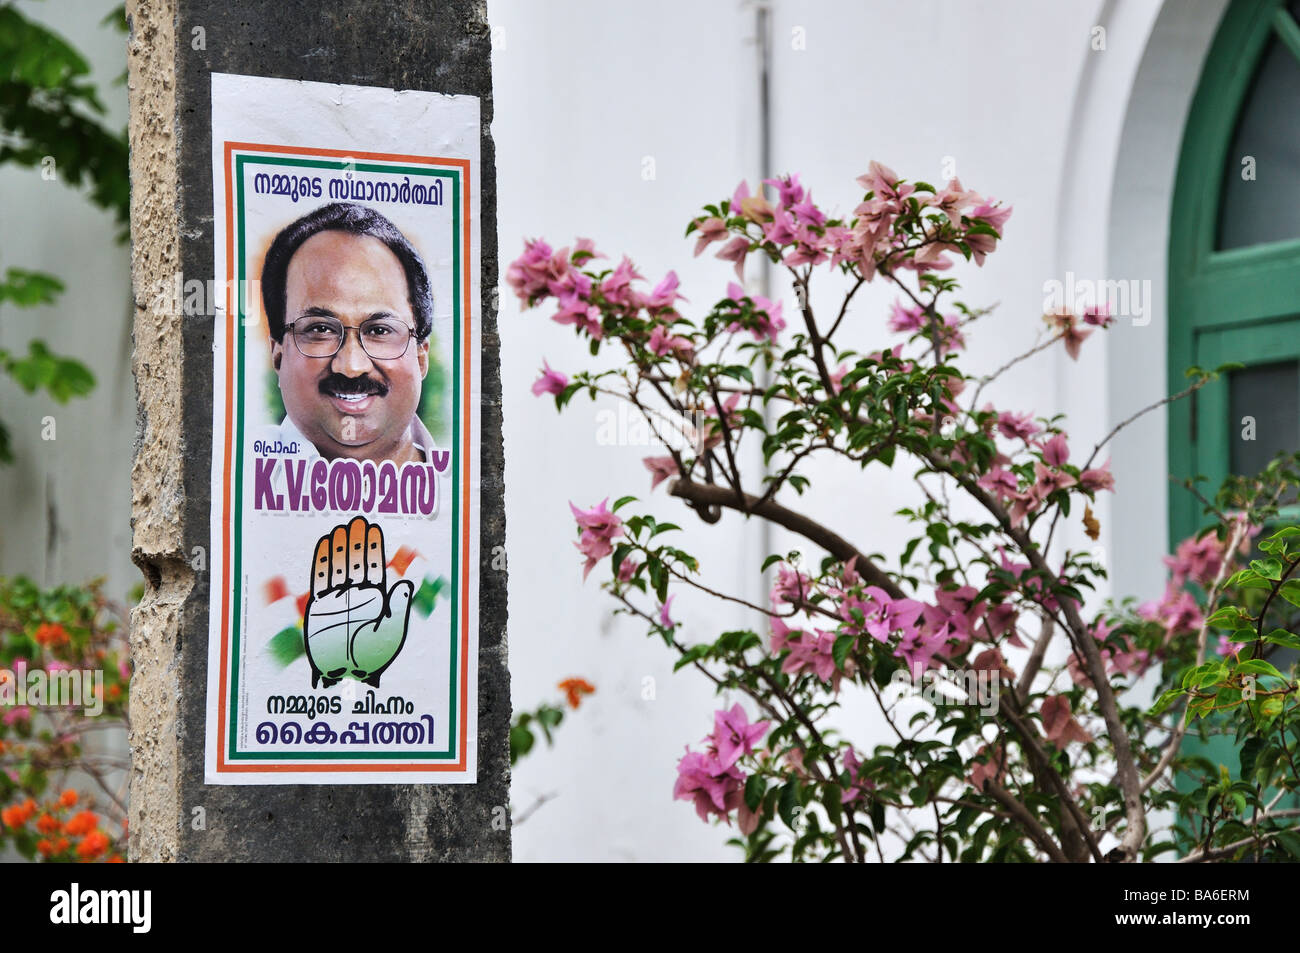 Indian election poster 2009 - Stock Image